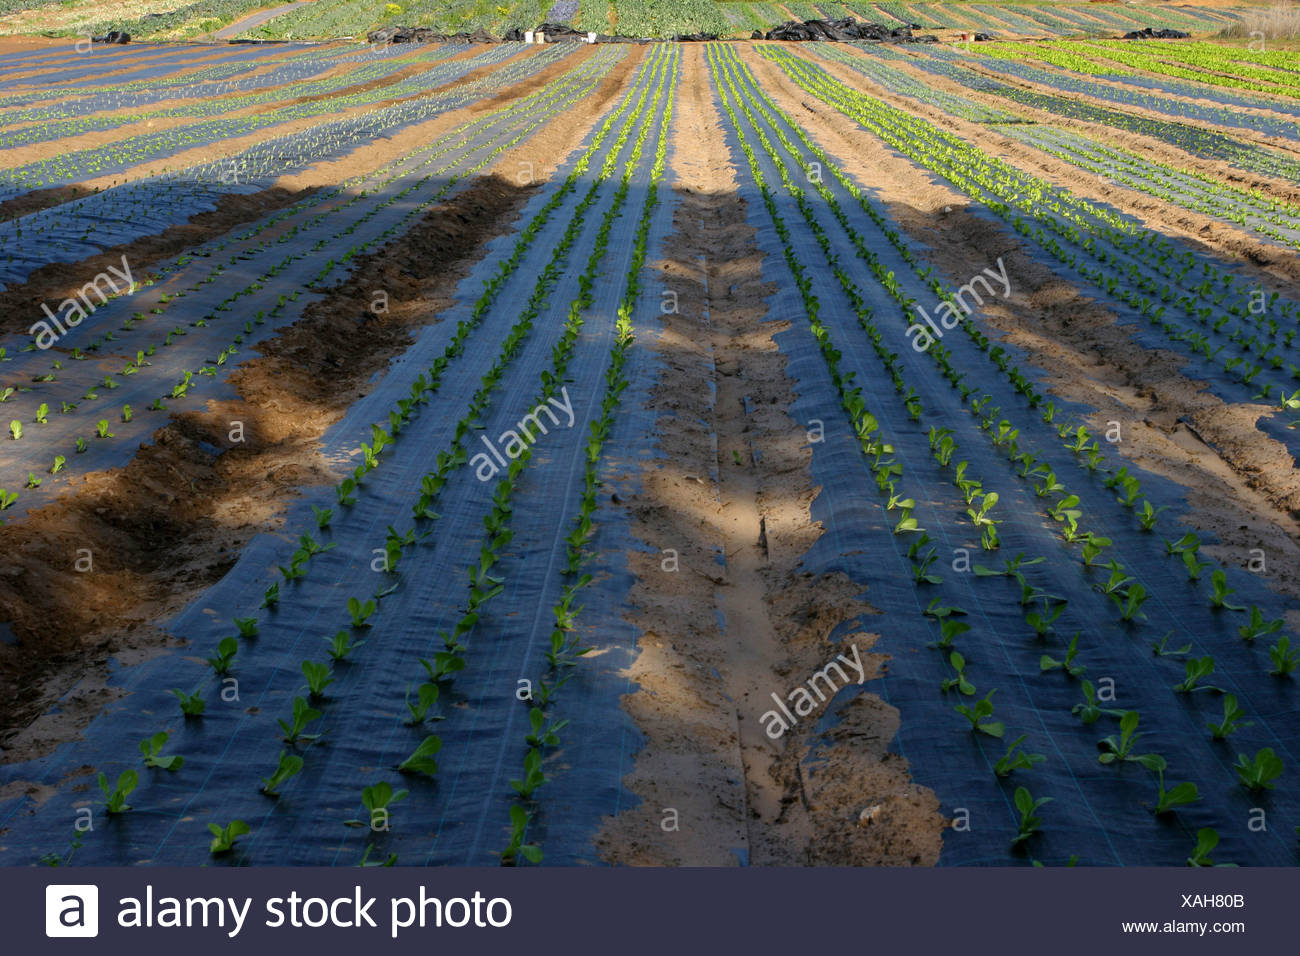 Vegetable plants are being grown in a protective environment of plastic sheets - Stock Image